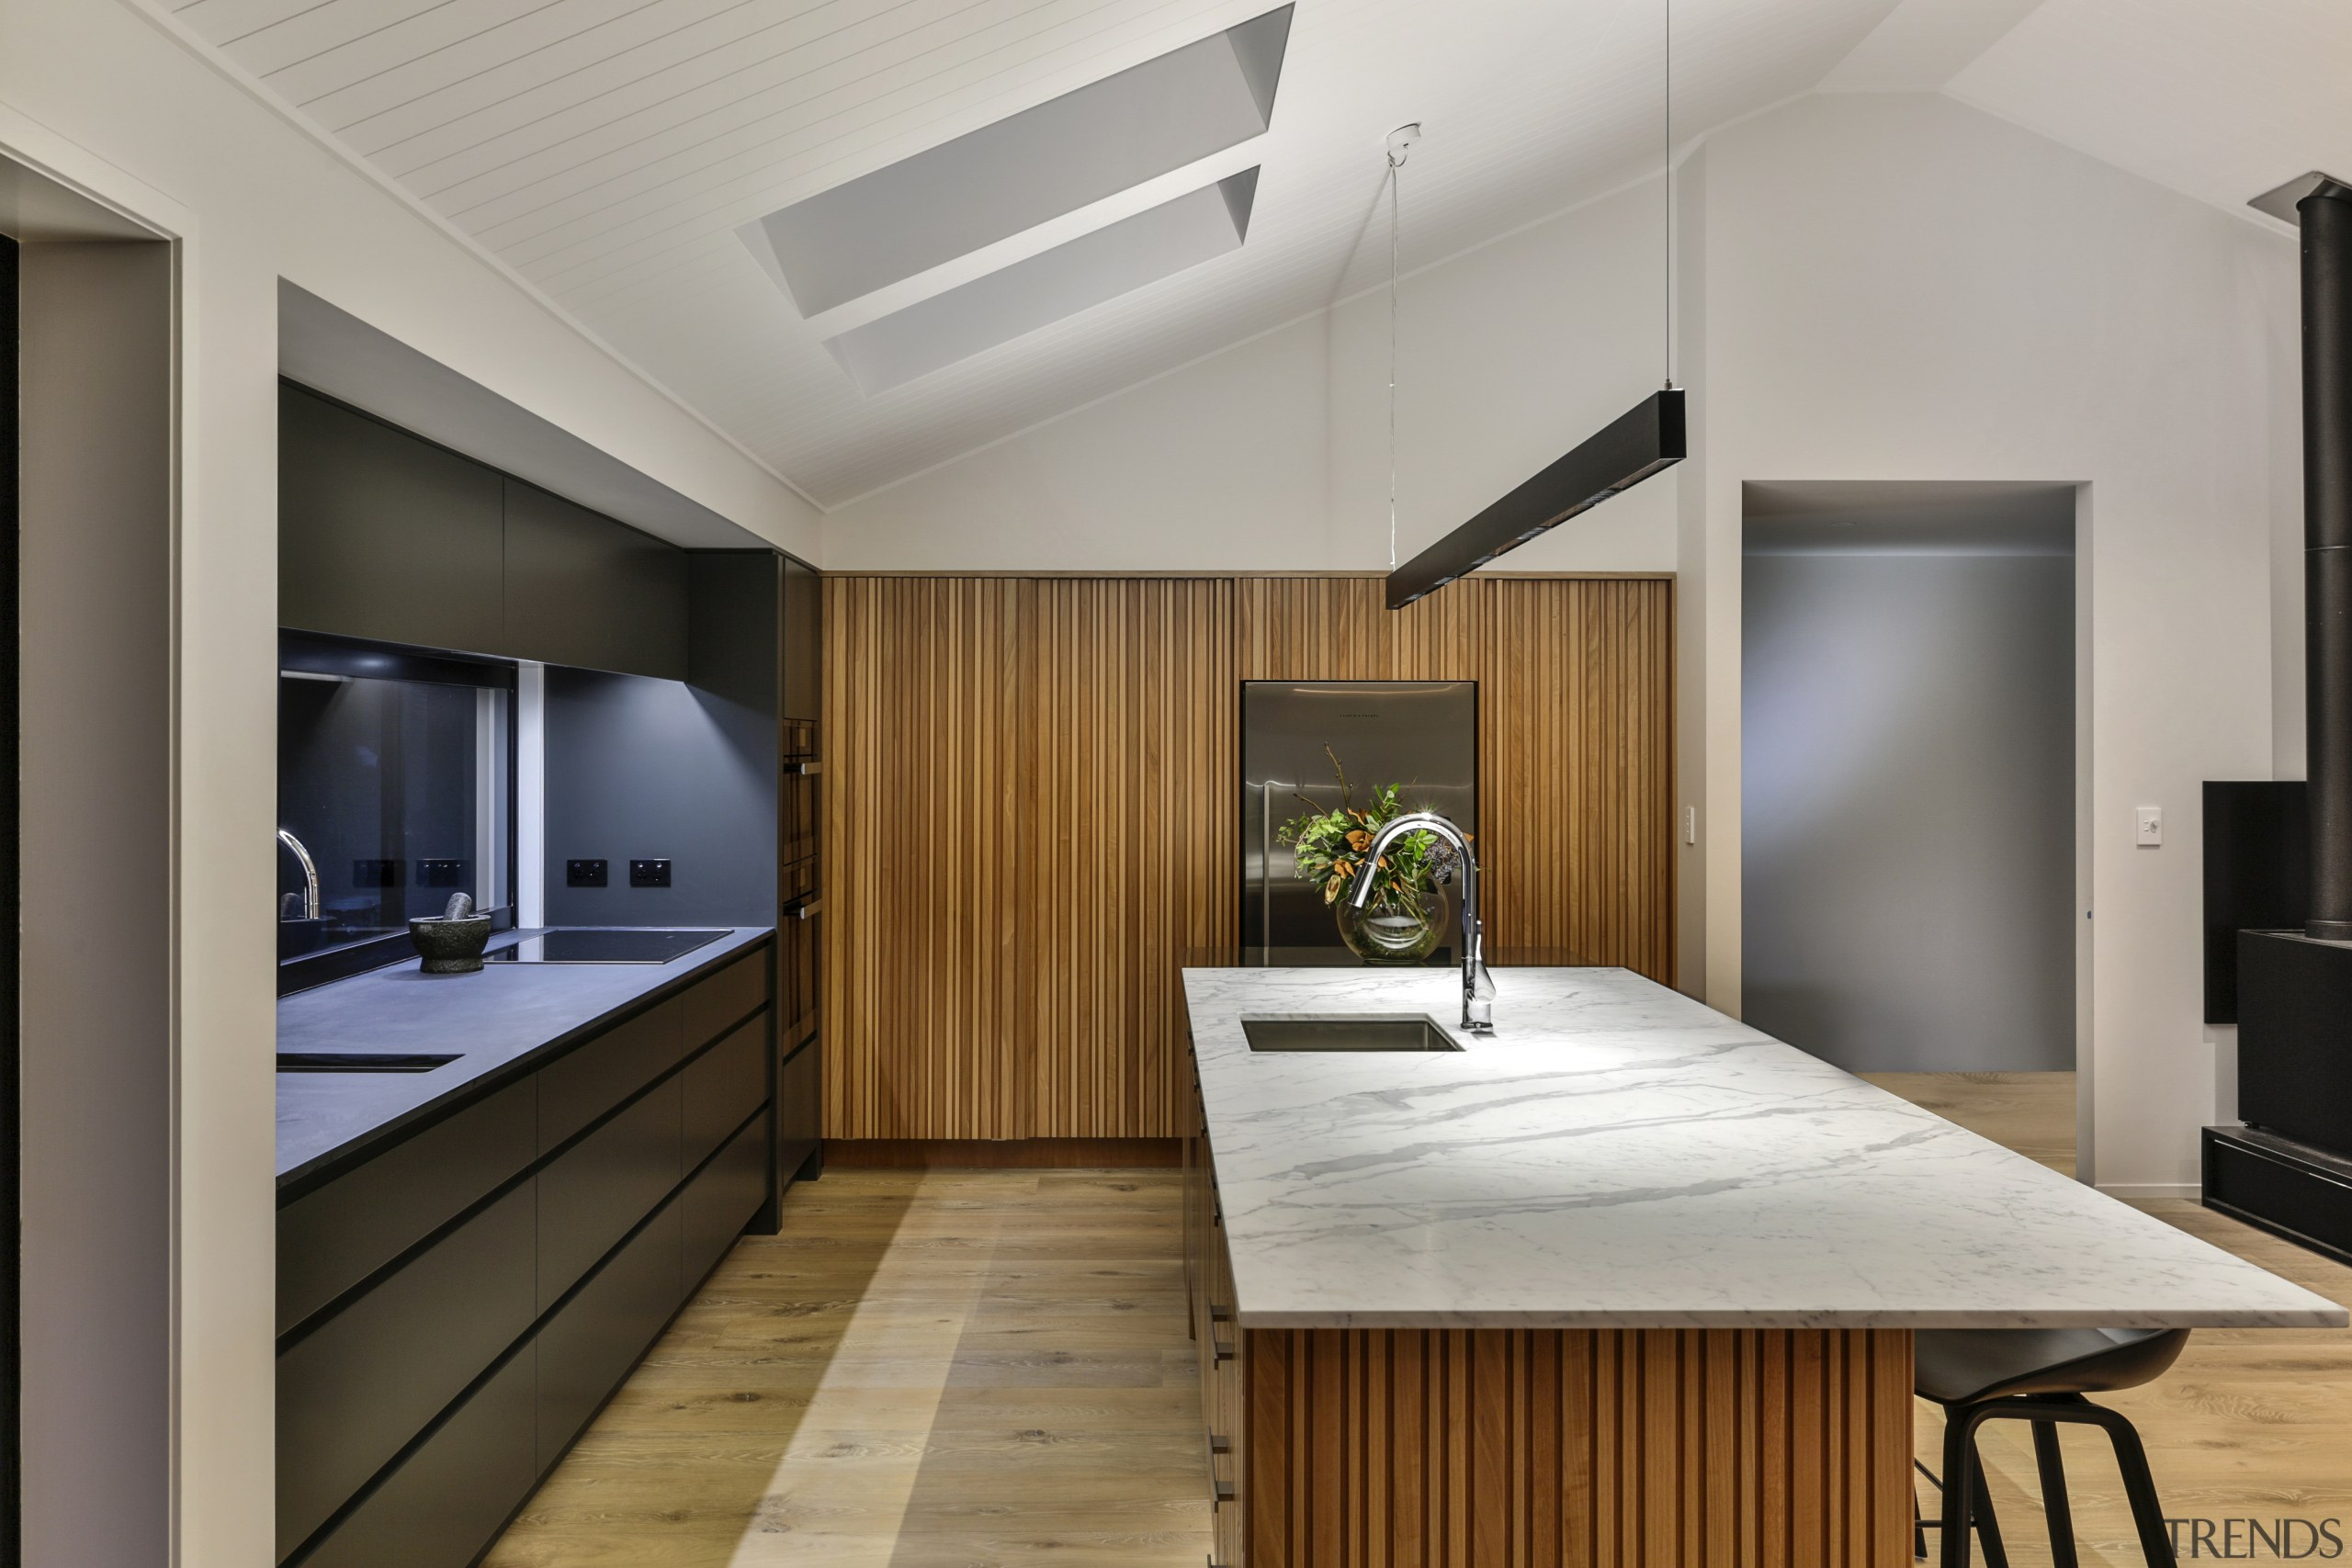 Half Moon Bay - architecture | ceiling | architecture, ceiling, interior design, real estate, room, gray